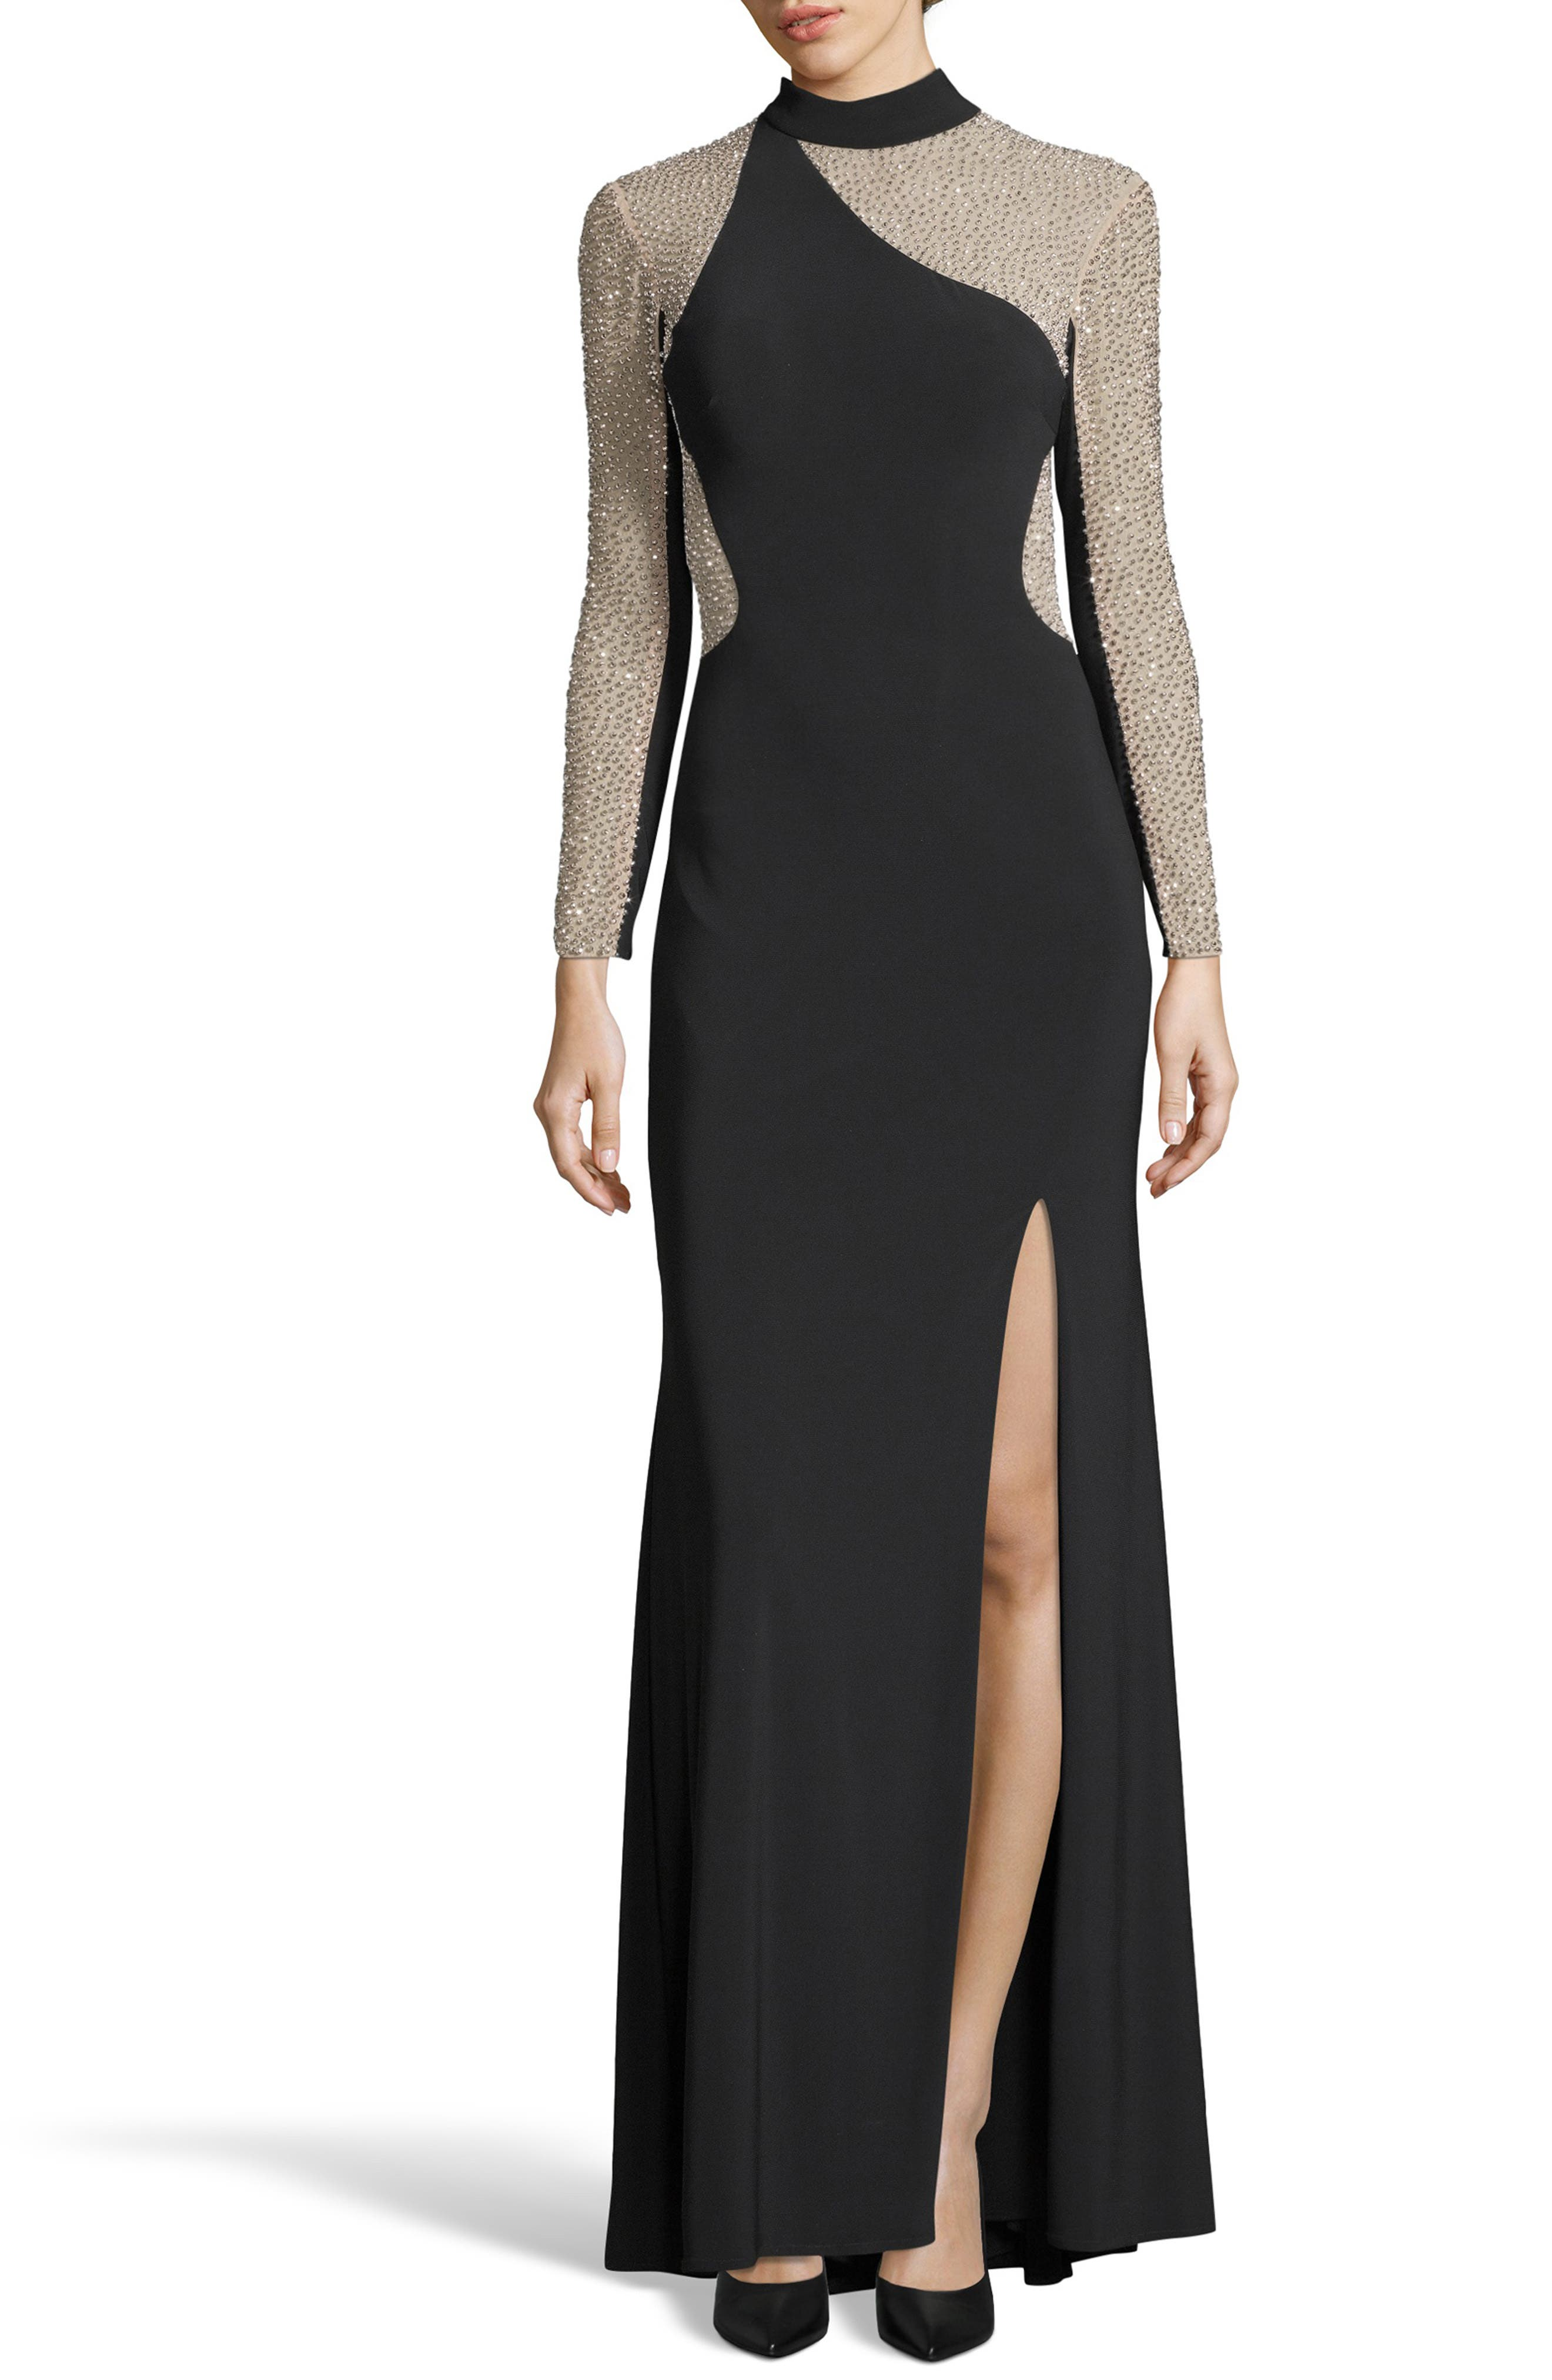 Ity Bead Embellished Jersey Gown,                         Main,                         color, BLACK/ NUDE/ SILVER